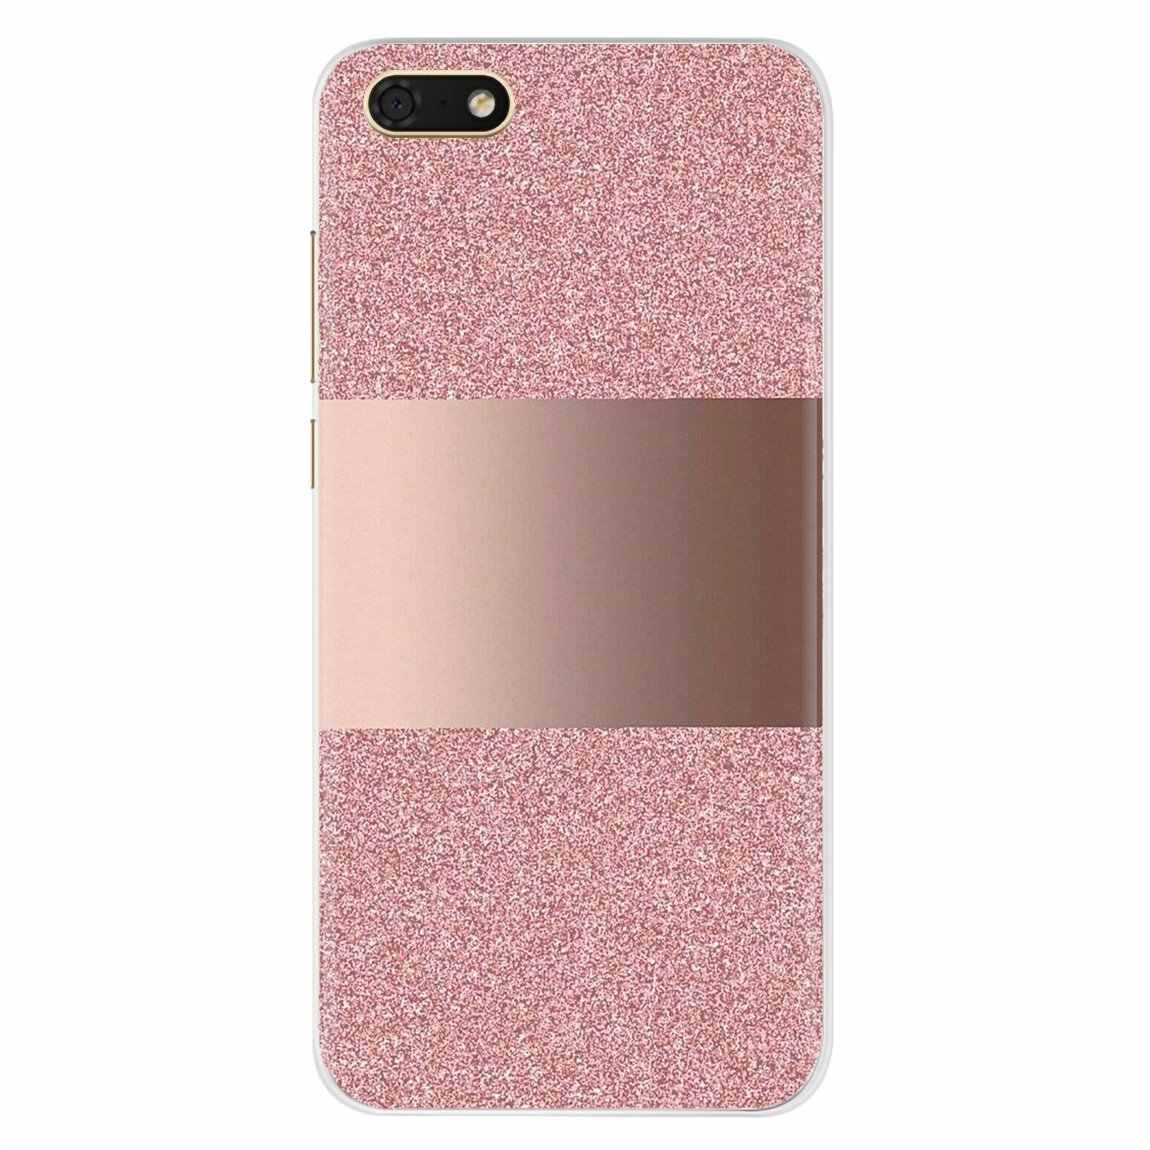 For Xiaomi Mi3 Mi4 Mi4i Mi4C Redmi Note 2 3 3S Pro 5 Note 5A Personalized Silicone Phone Case colorful Glitter